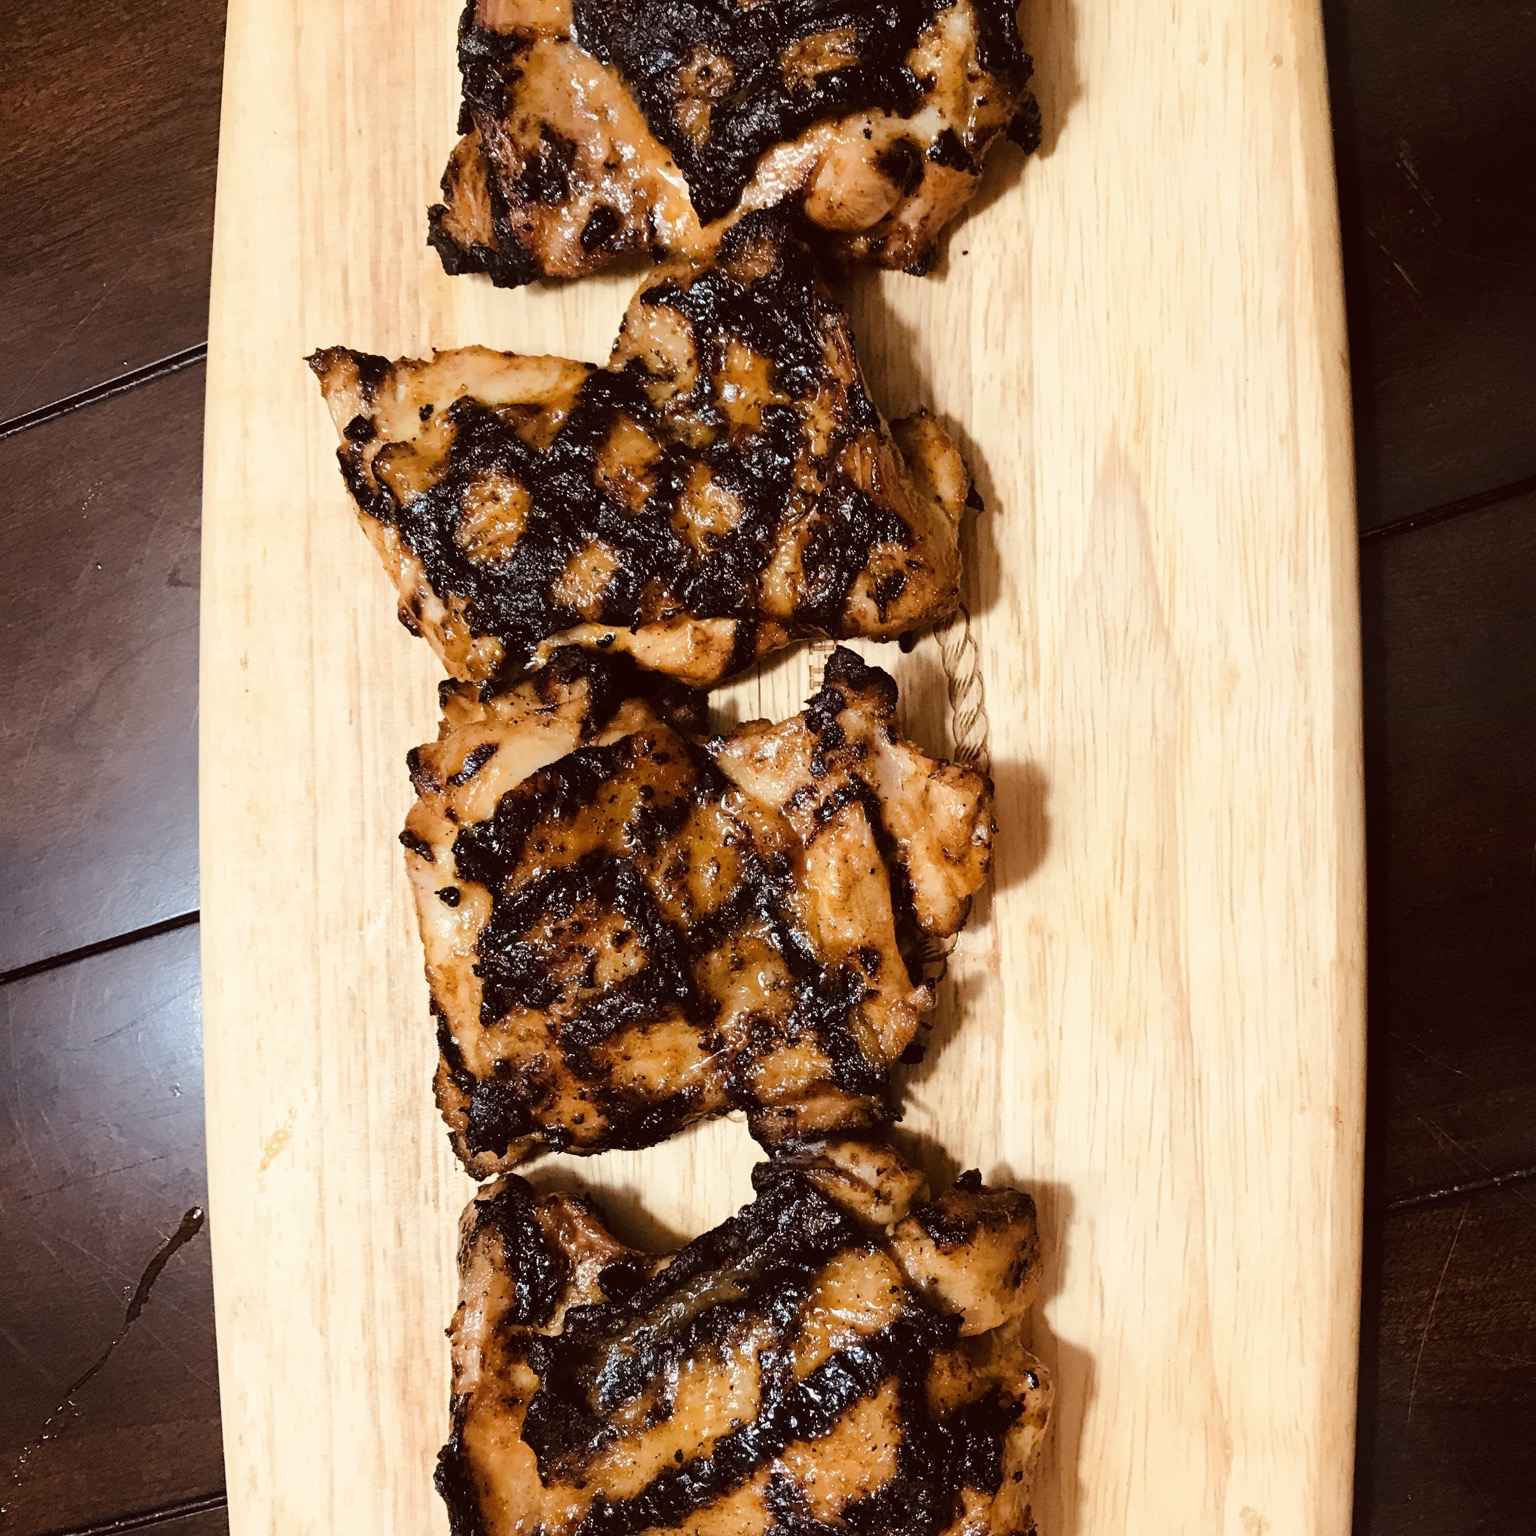 Grilled Chicken Thighs with Mango-Ancho Sauce BaseballFan